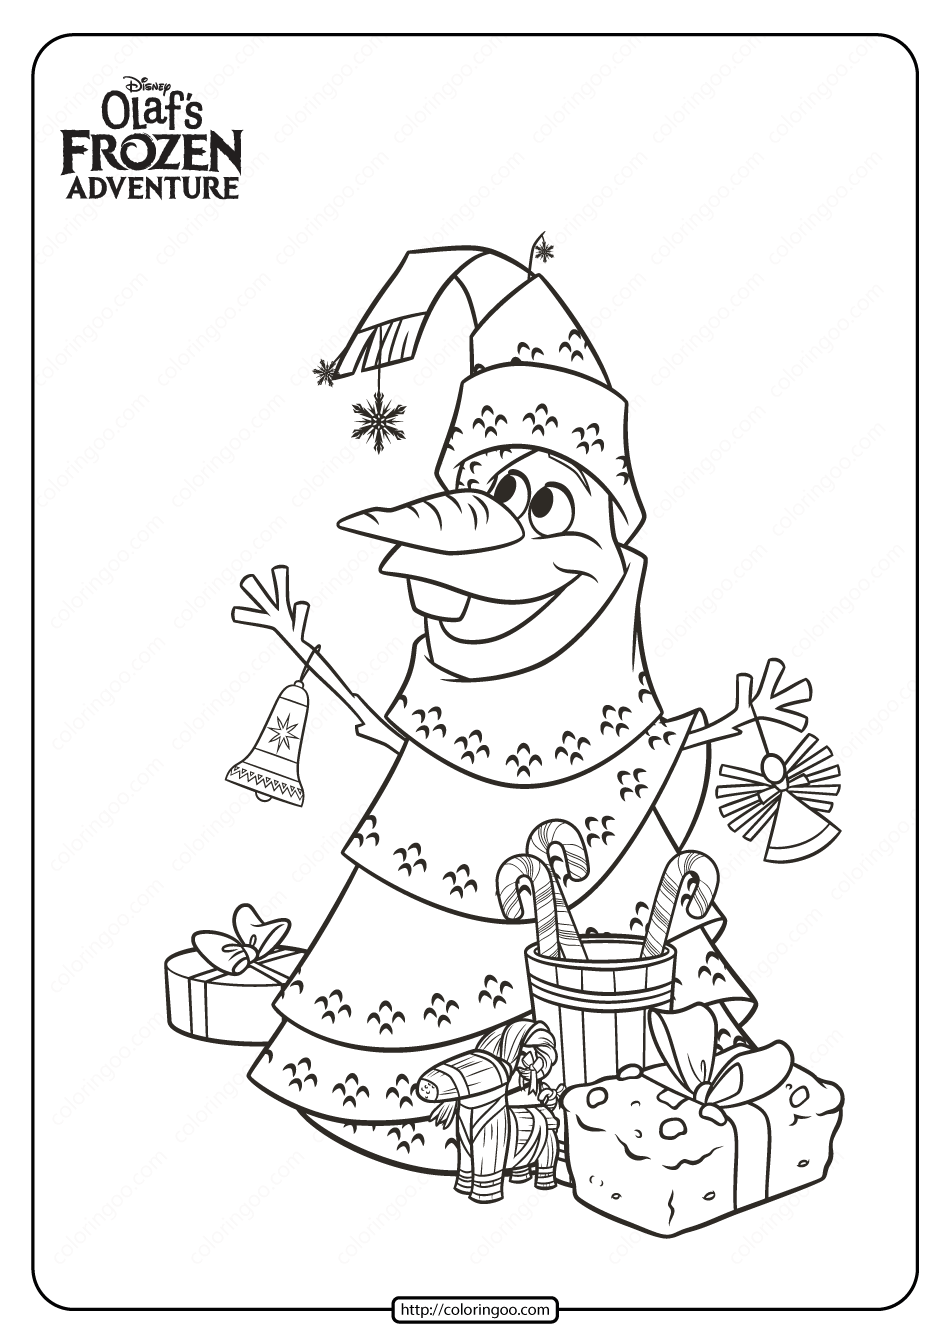 Disney Olaf S Frozen Adventure Coloring Pages 01 Disney Coloring Pages Disney Olaf Coloring Pages